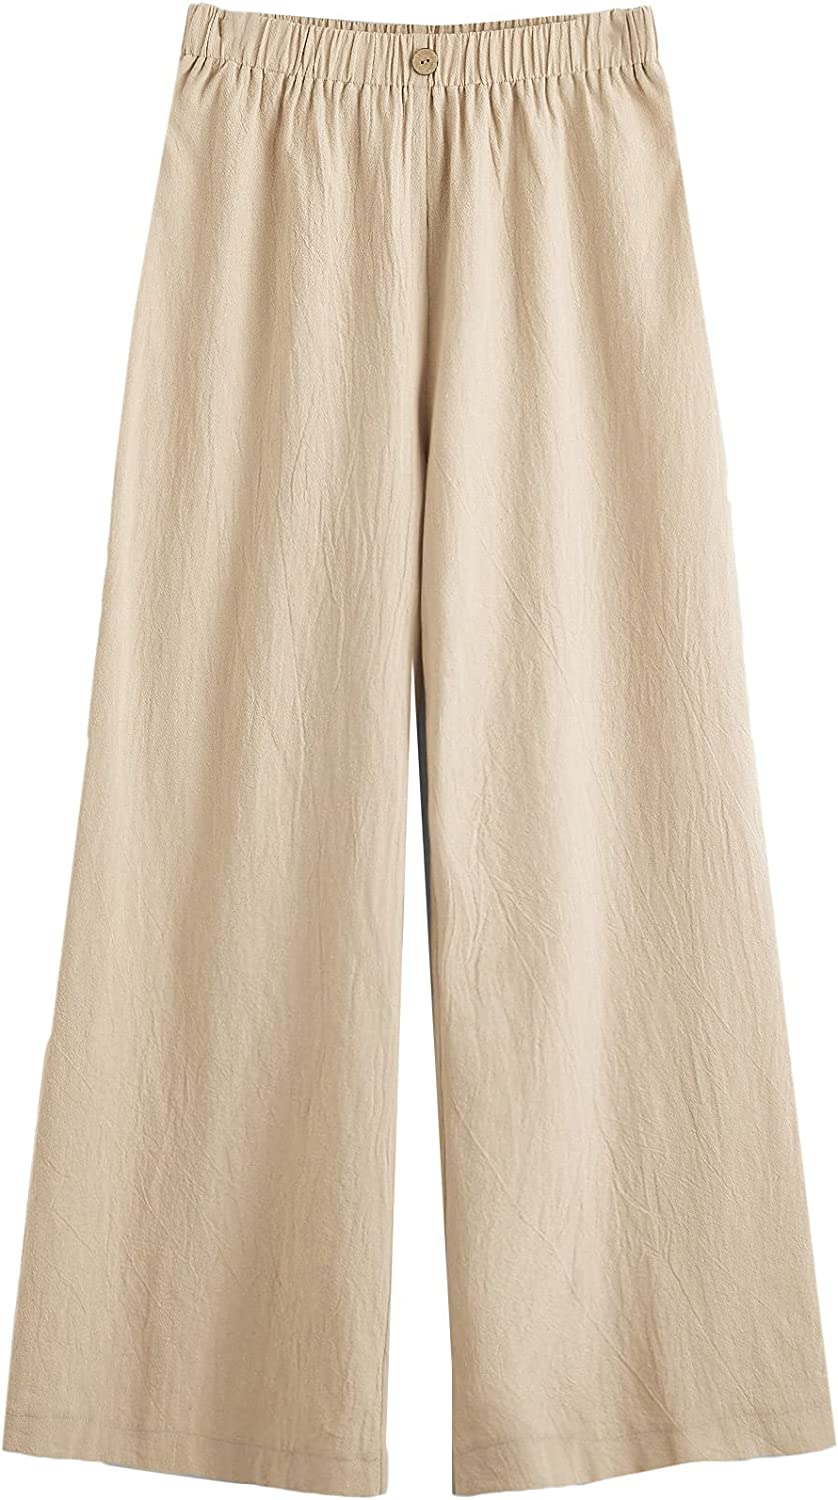 Floerns Women's Elastic Waisted Solid Casual Wide Leg Palazzo Pants